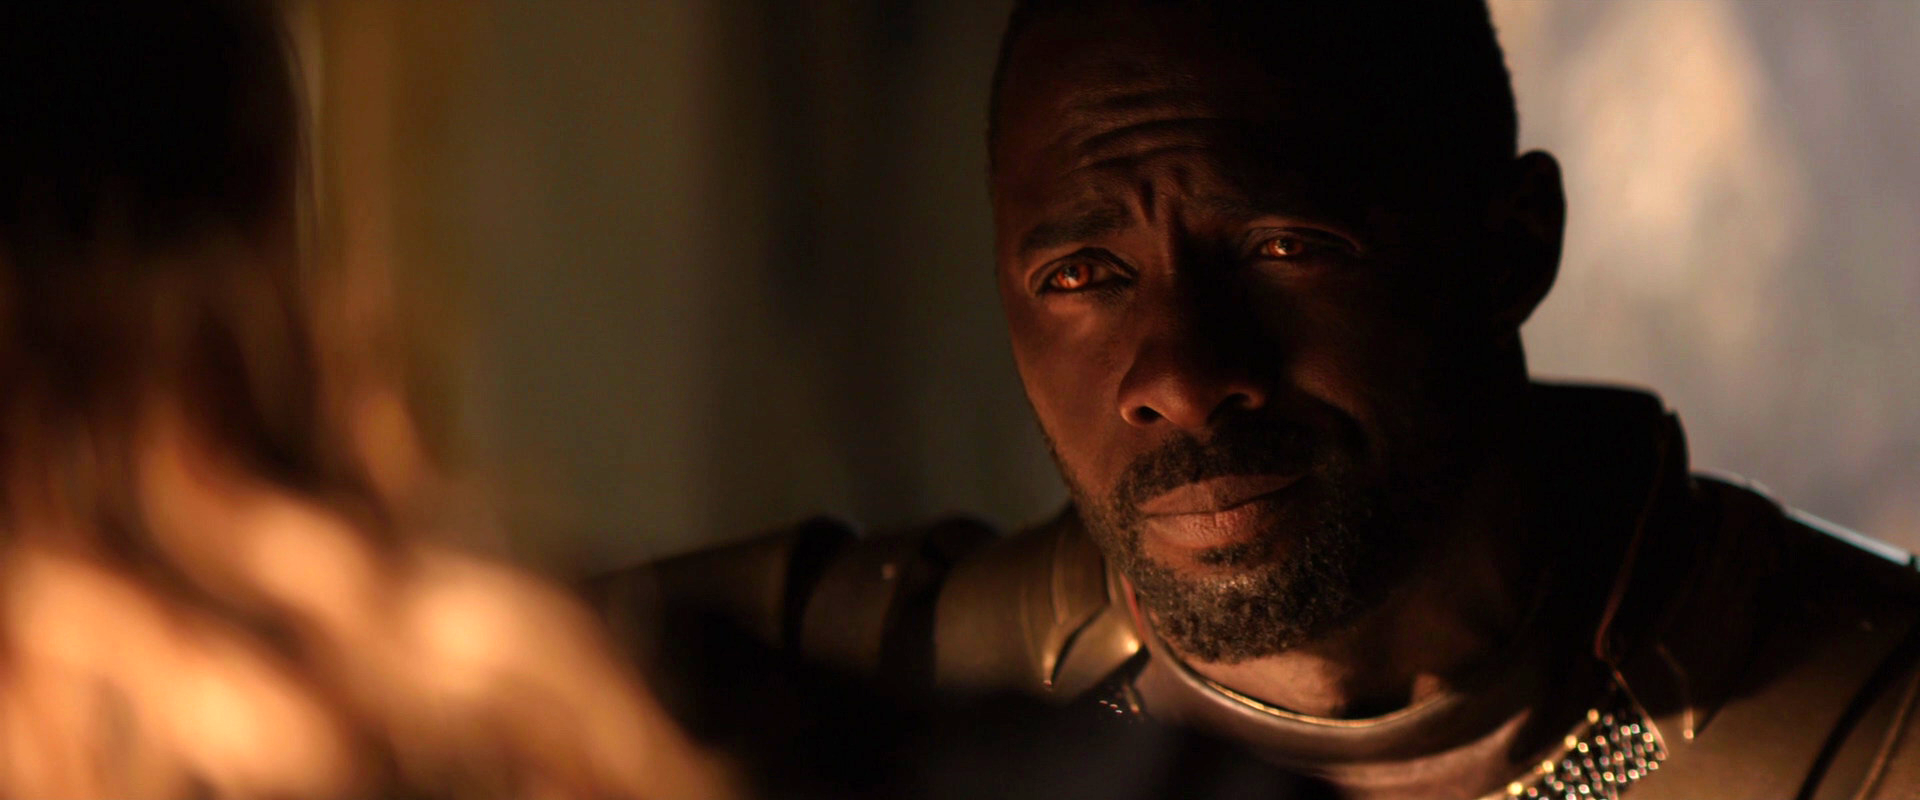 Heimdall can get it.